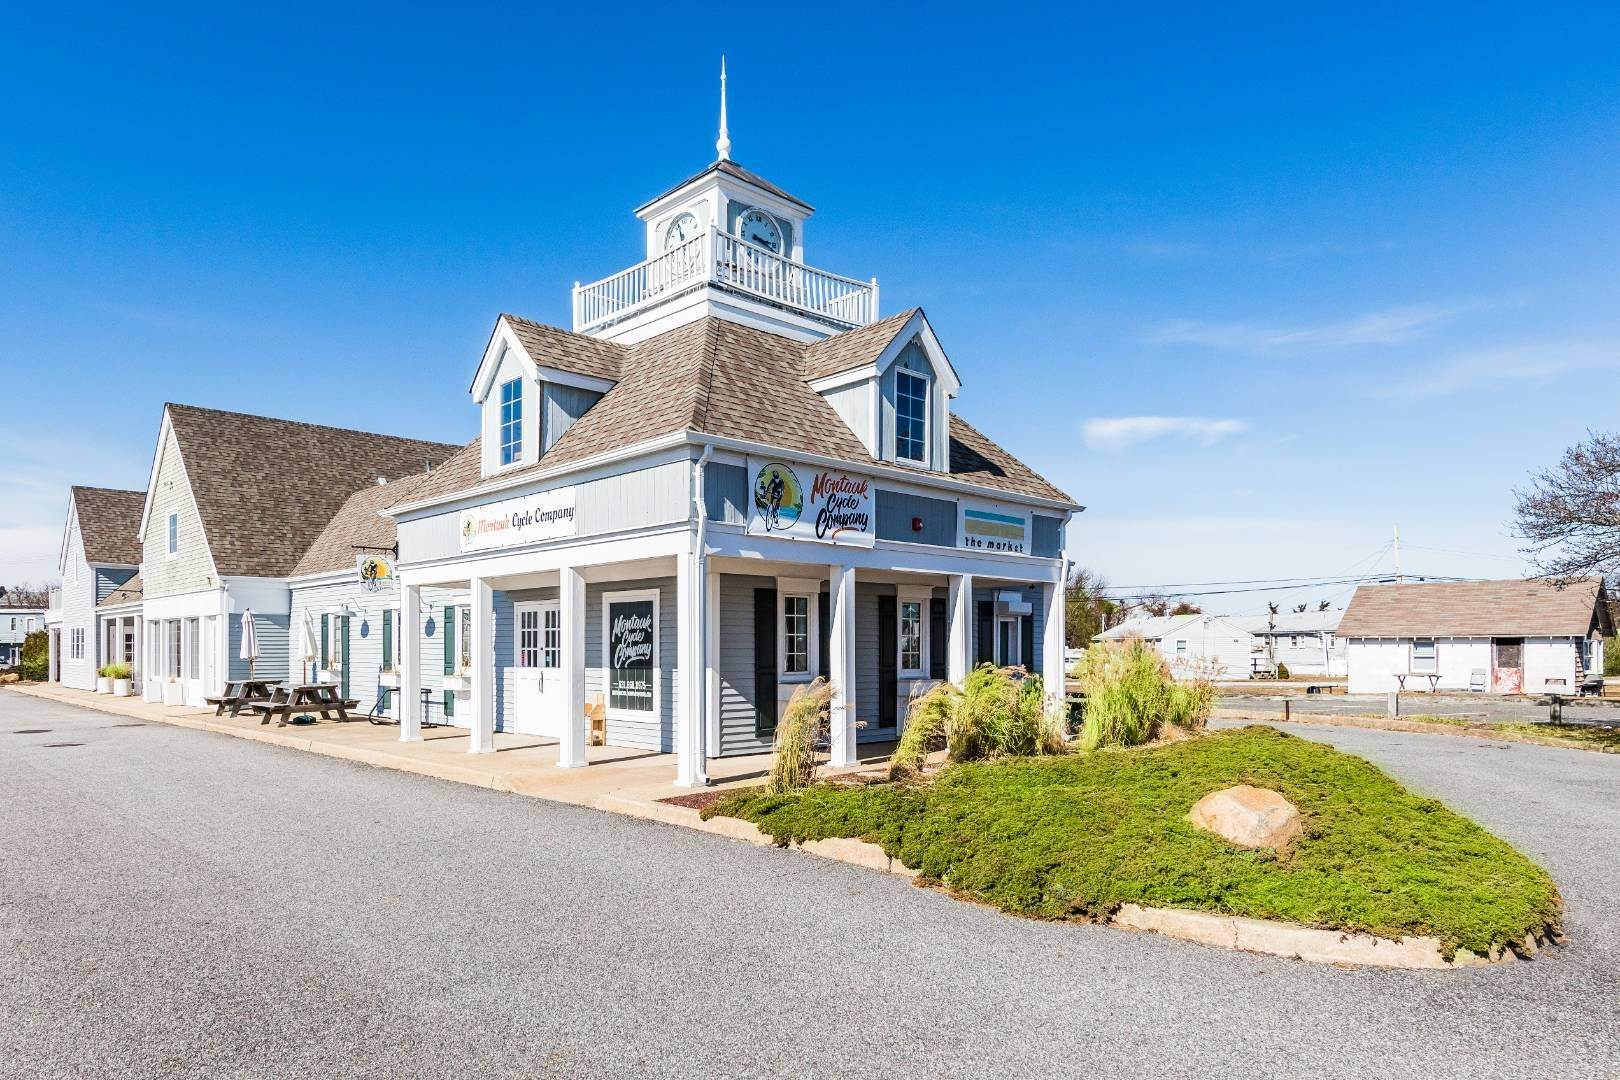 Commercial for Sale at Turn Key Commercial Investment In Montauk Harbor 541 West Lake Drive, Montauk, NY 11954